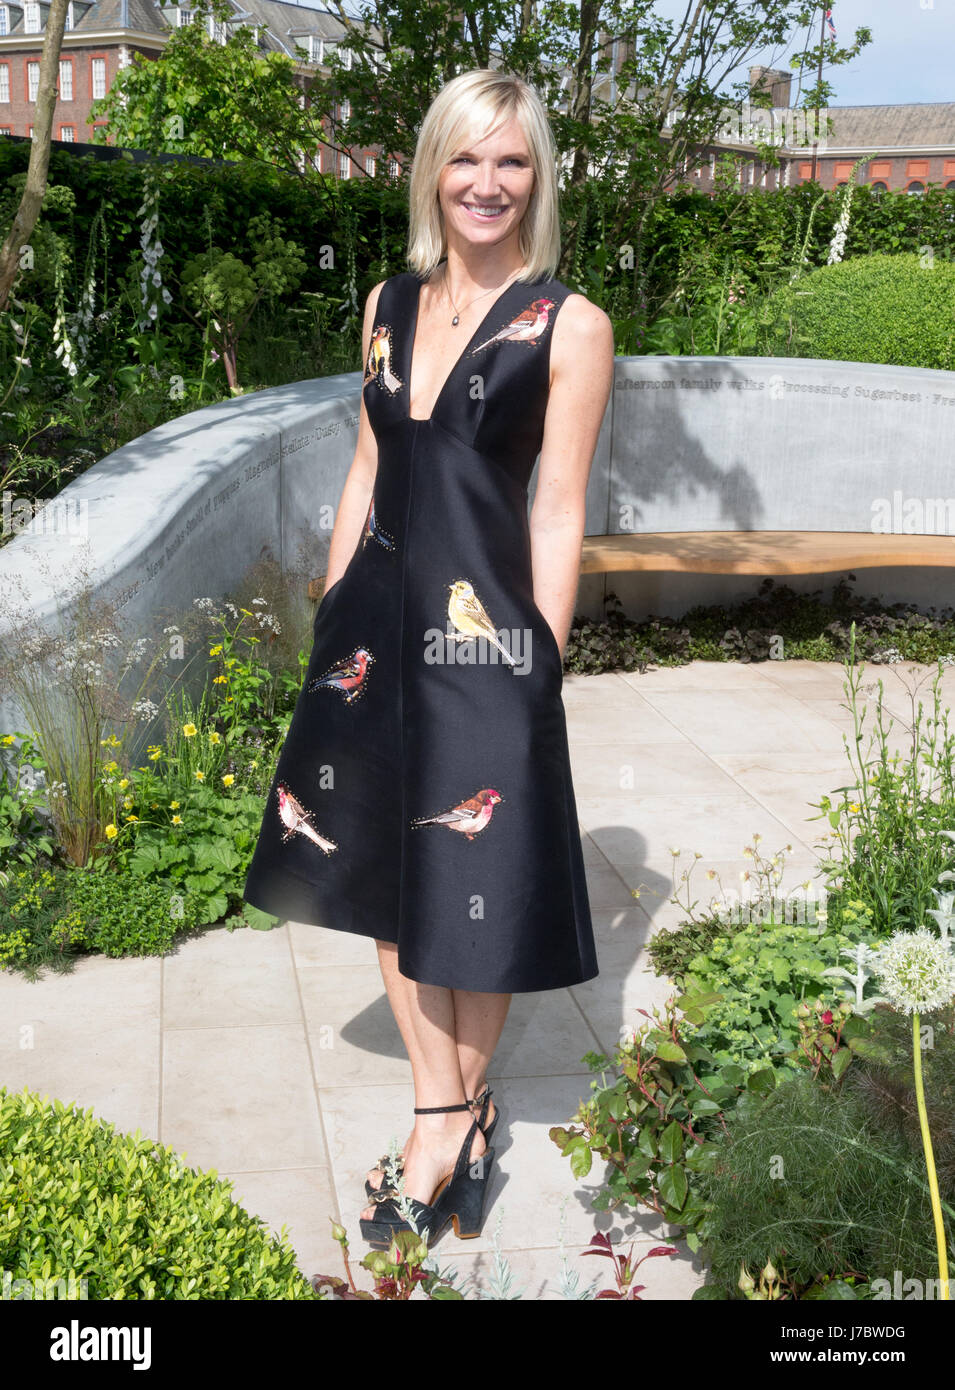 BBC 2 Disc Jockey and Radio presenter, Jo Whiley at the RHS Chelsea Flower Show 2017 - Stock Image